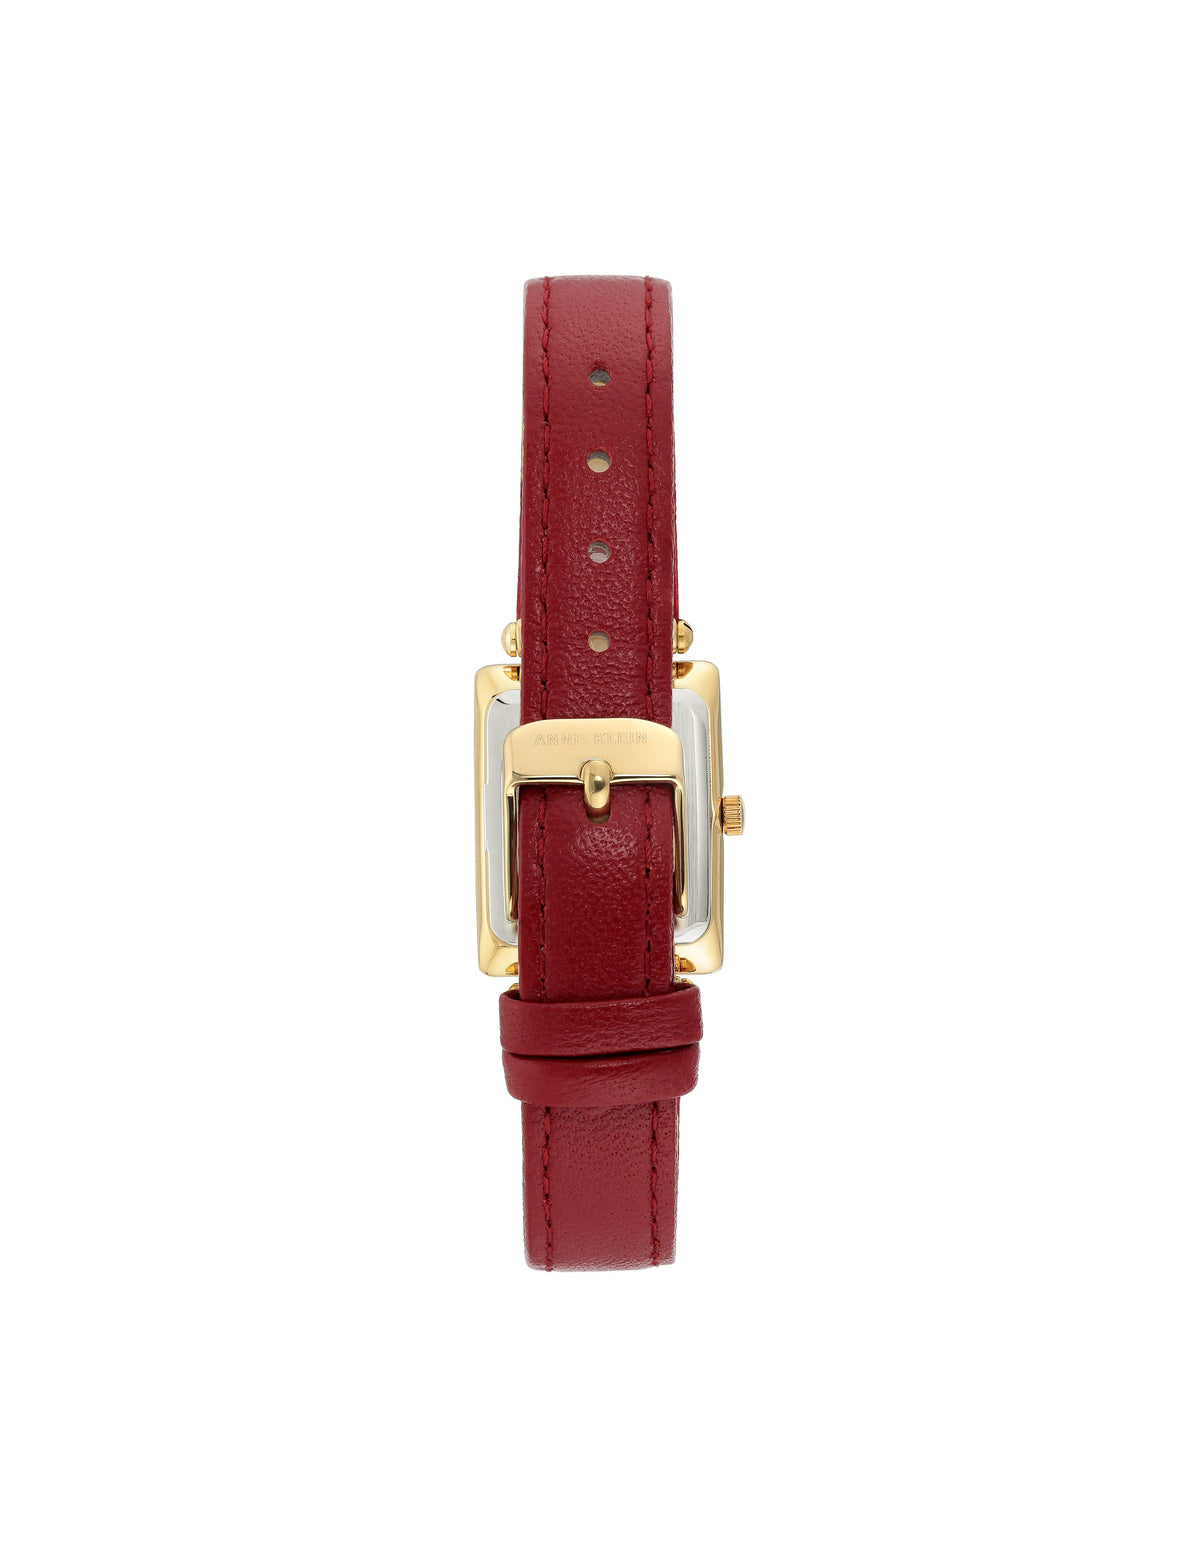 gold-tone red leather strap watch rectangular case